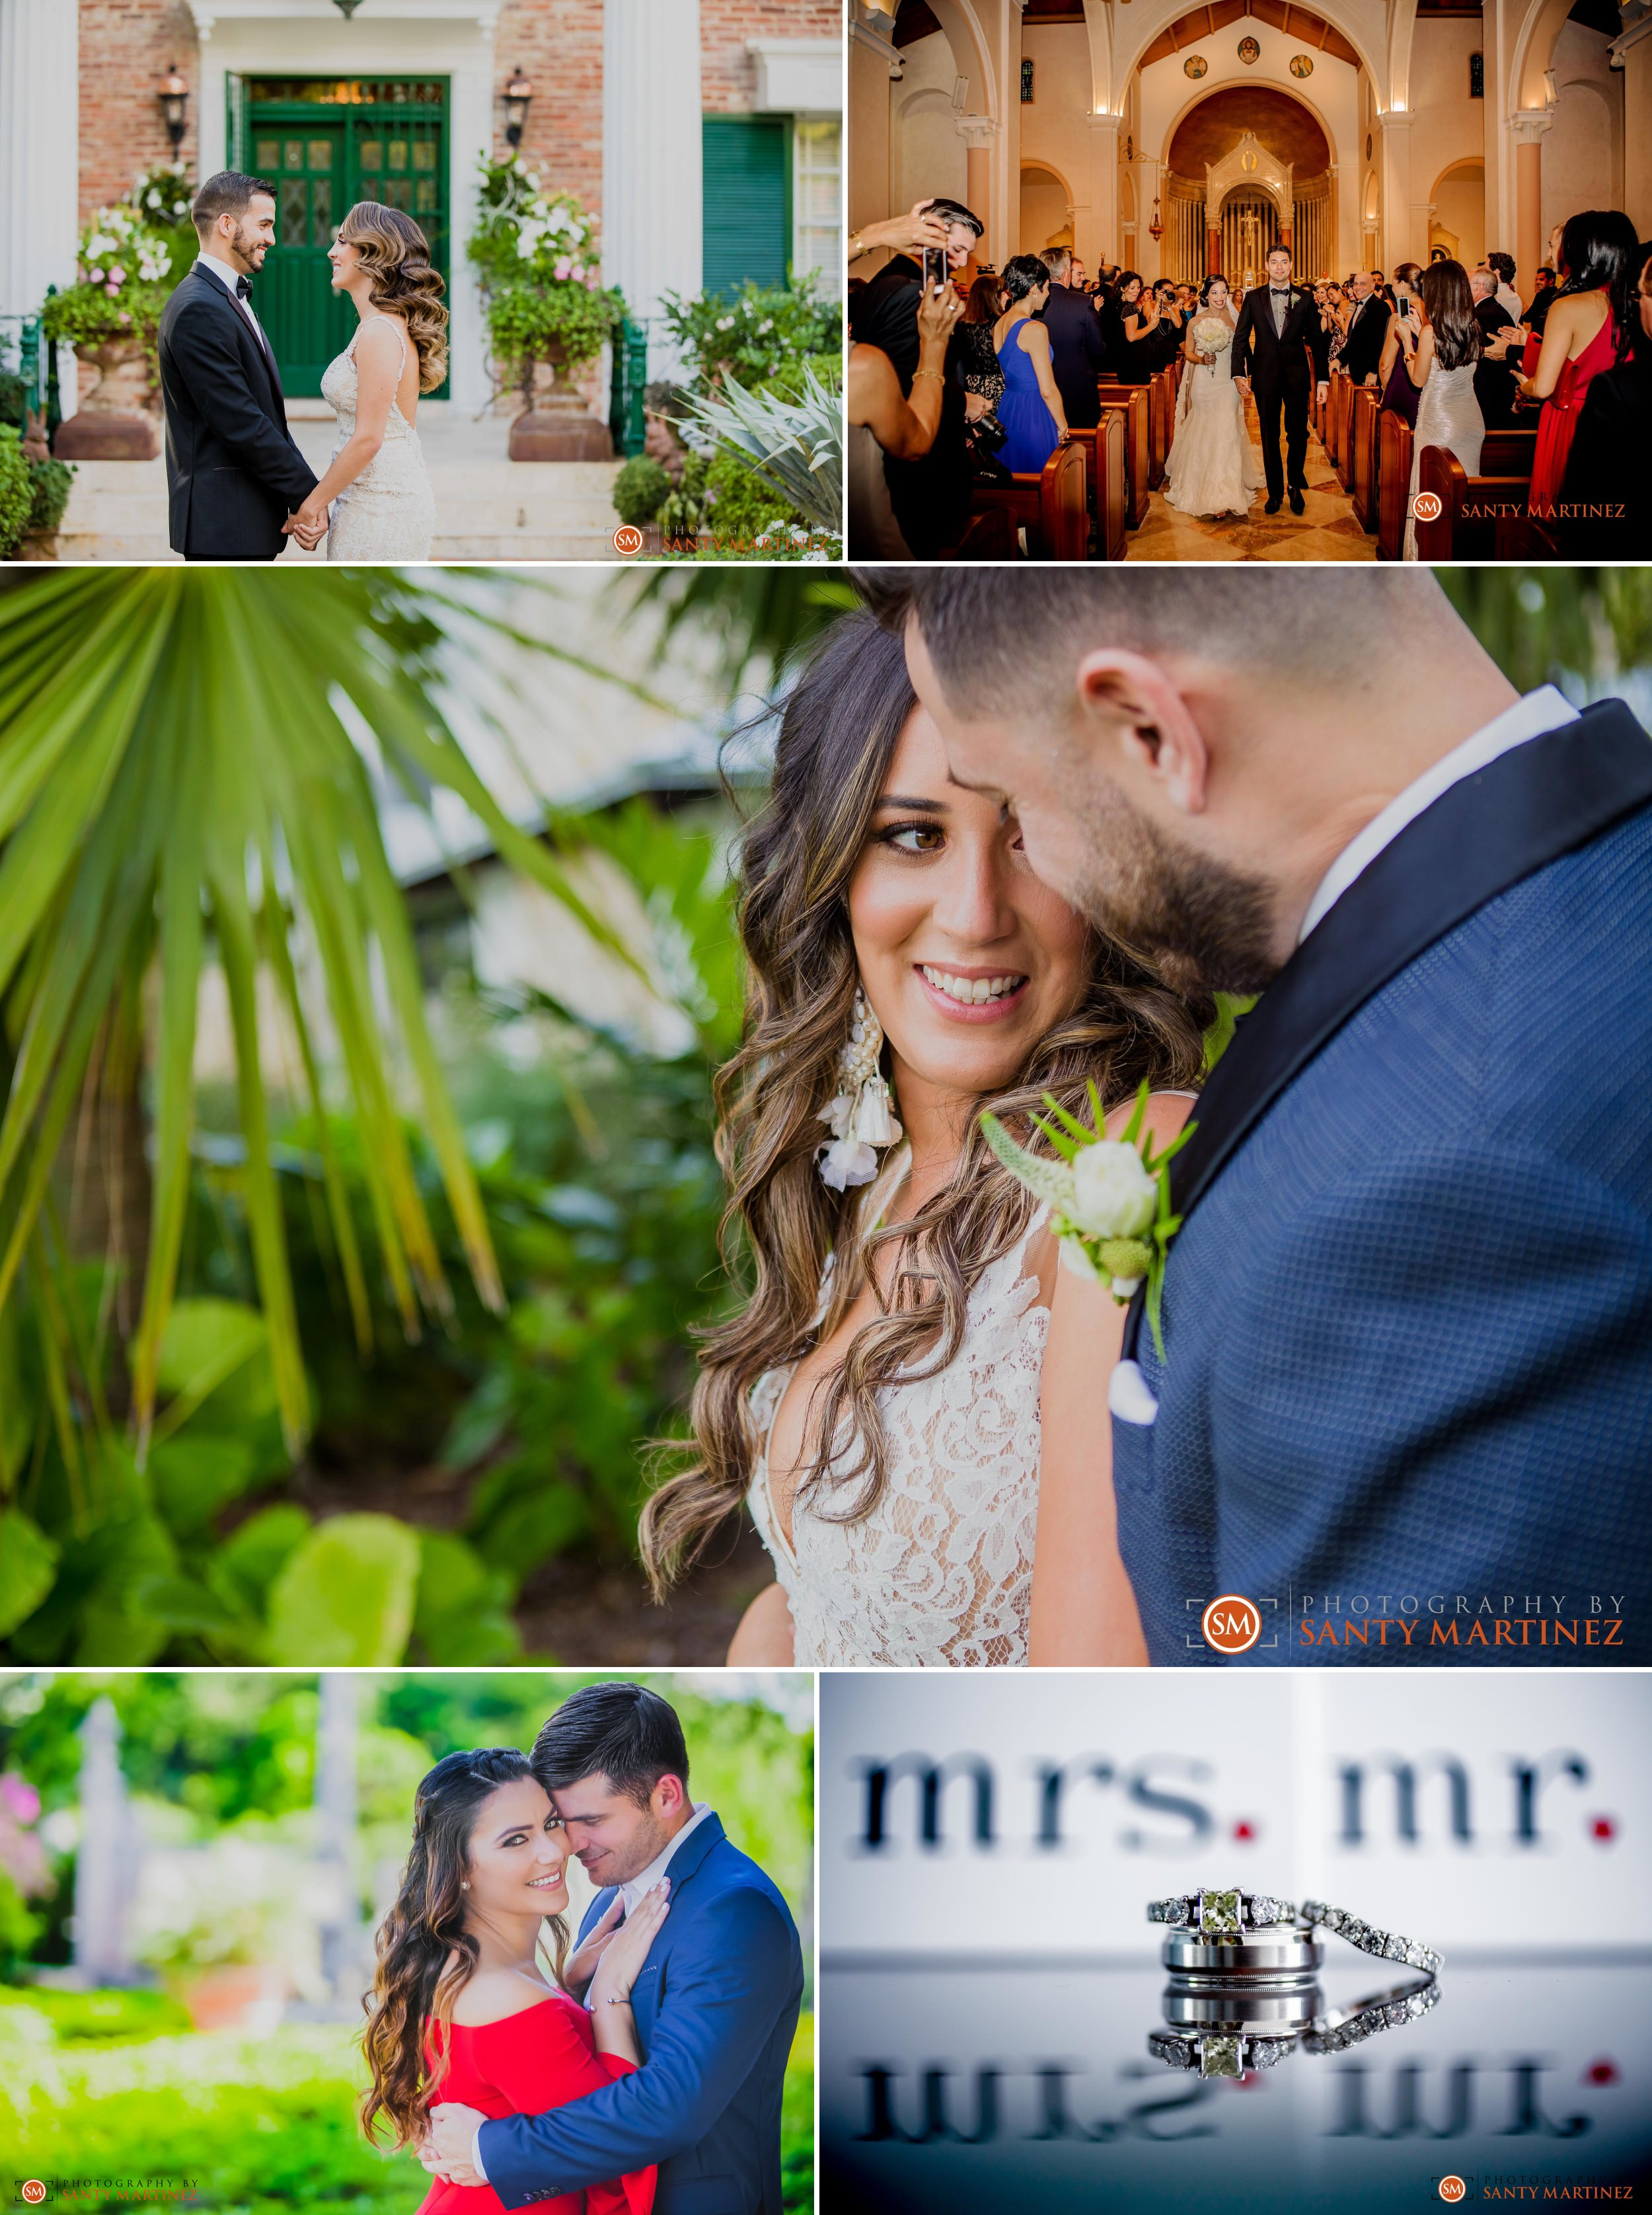 Santy Martinez - Photography - Miami Wedding Photographers 24.jpg